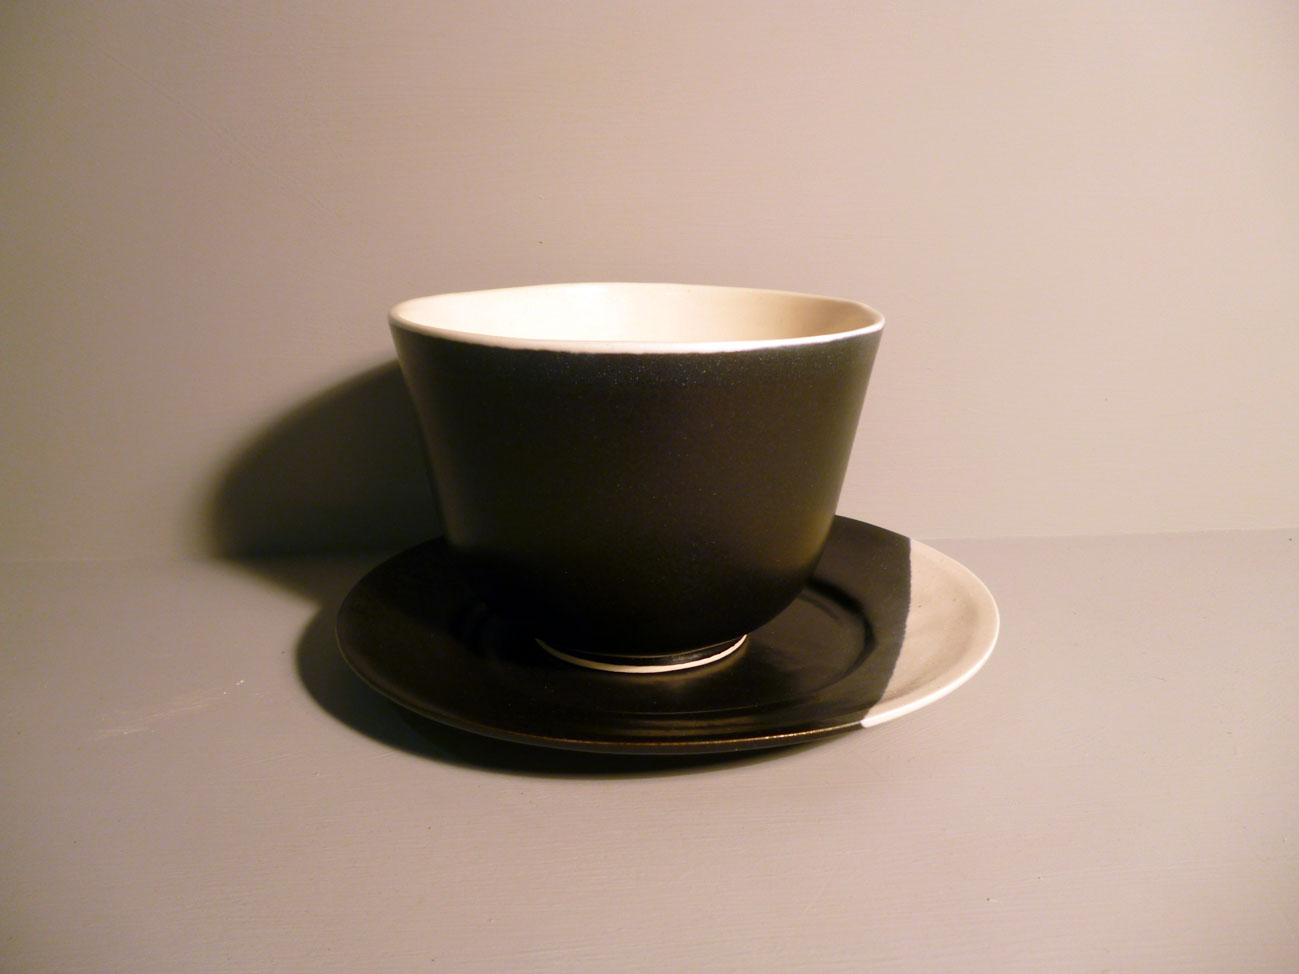 Bell Bowl and Plate Set in Graphite-Black